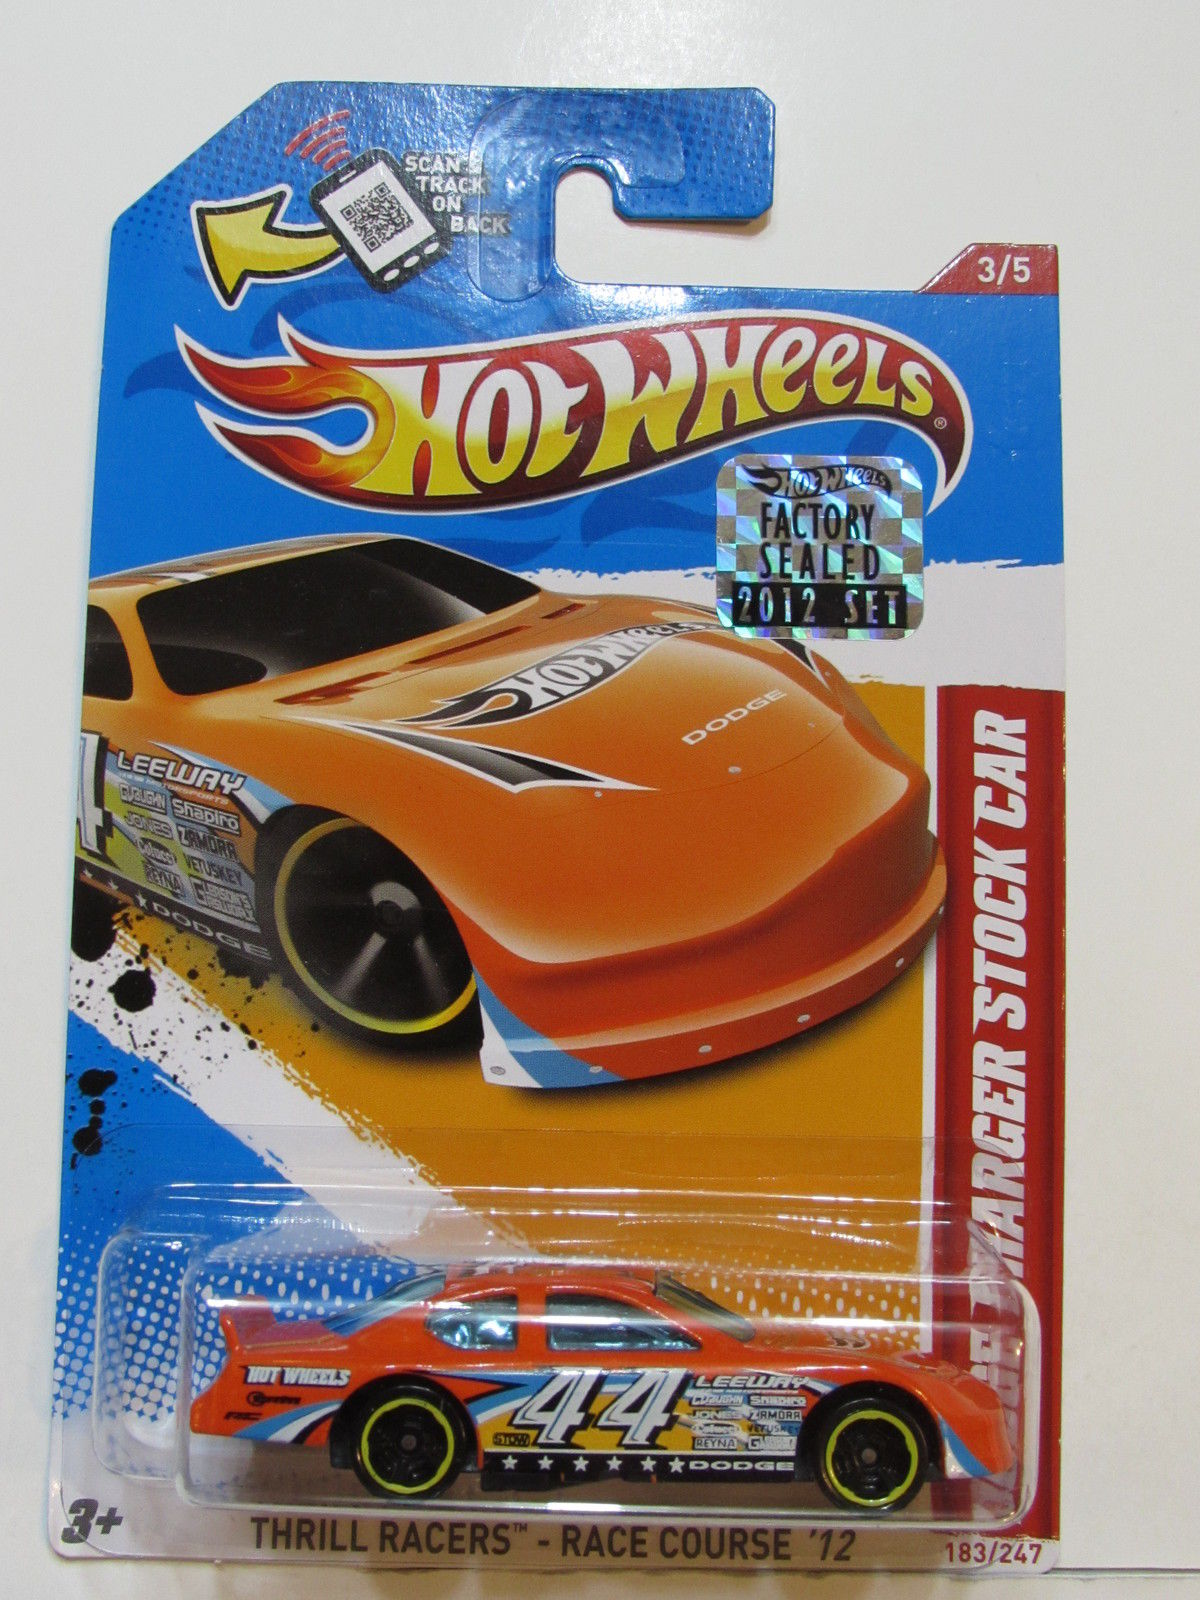 HOT WHEELS 2012 THRILL DODGE CHARGER STOCK CAR FACTORY SEALED